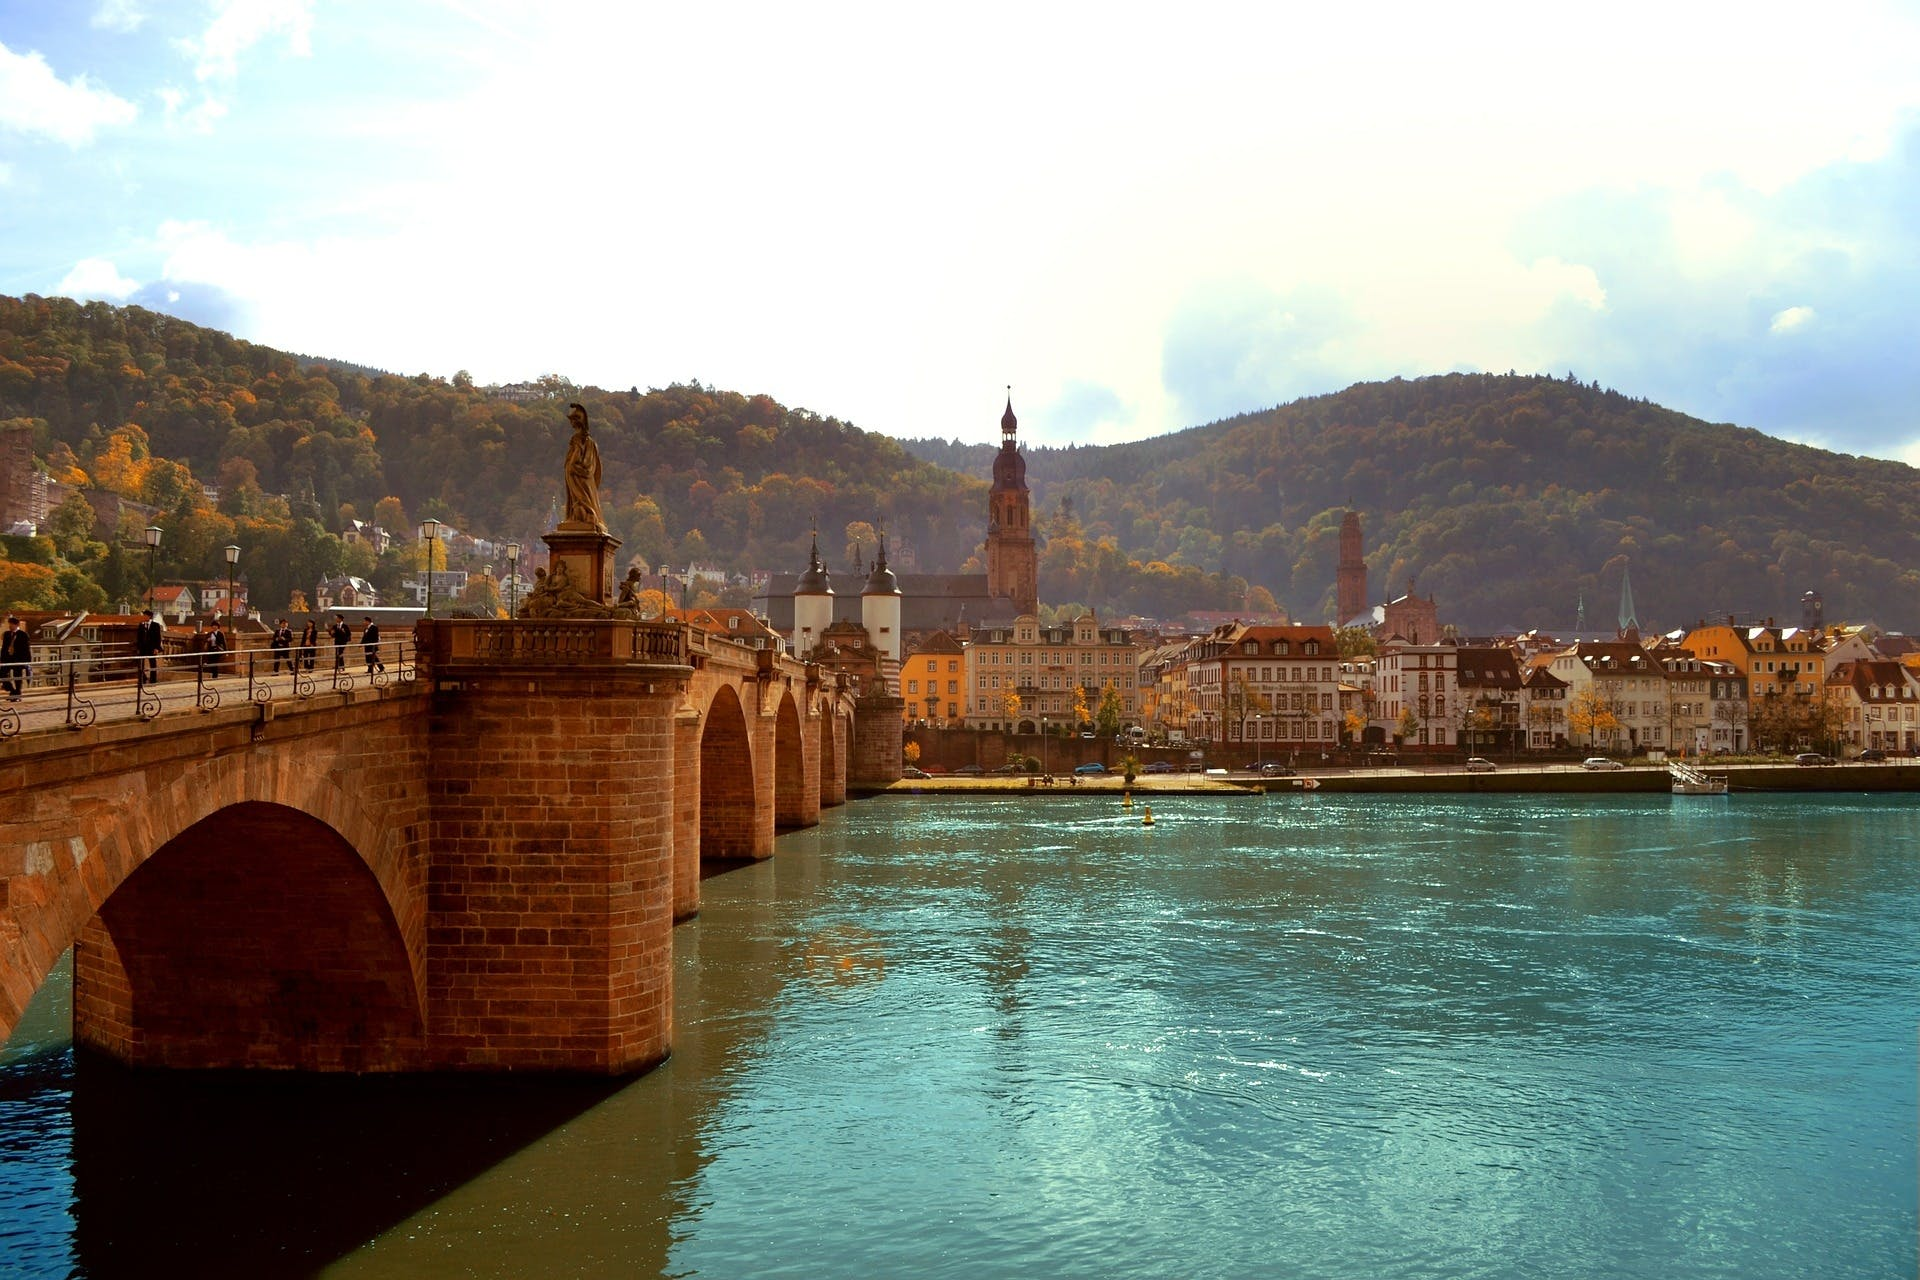 Afternoon Tour to Heidelberg from Frankfurt